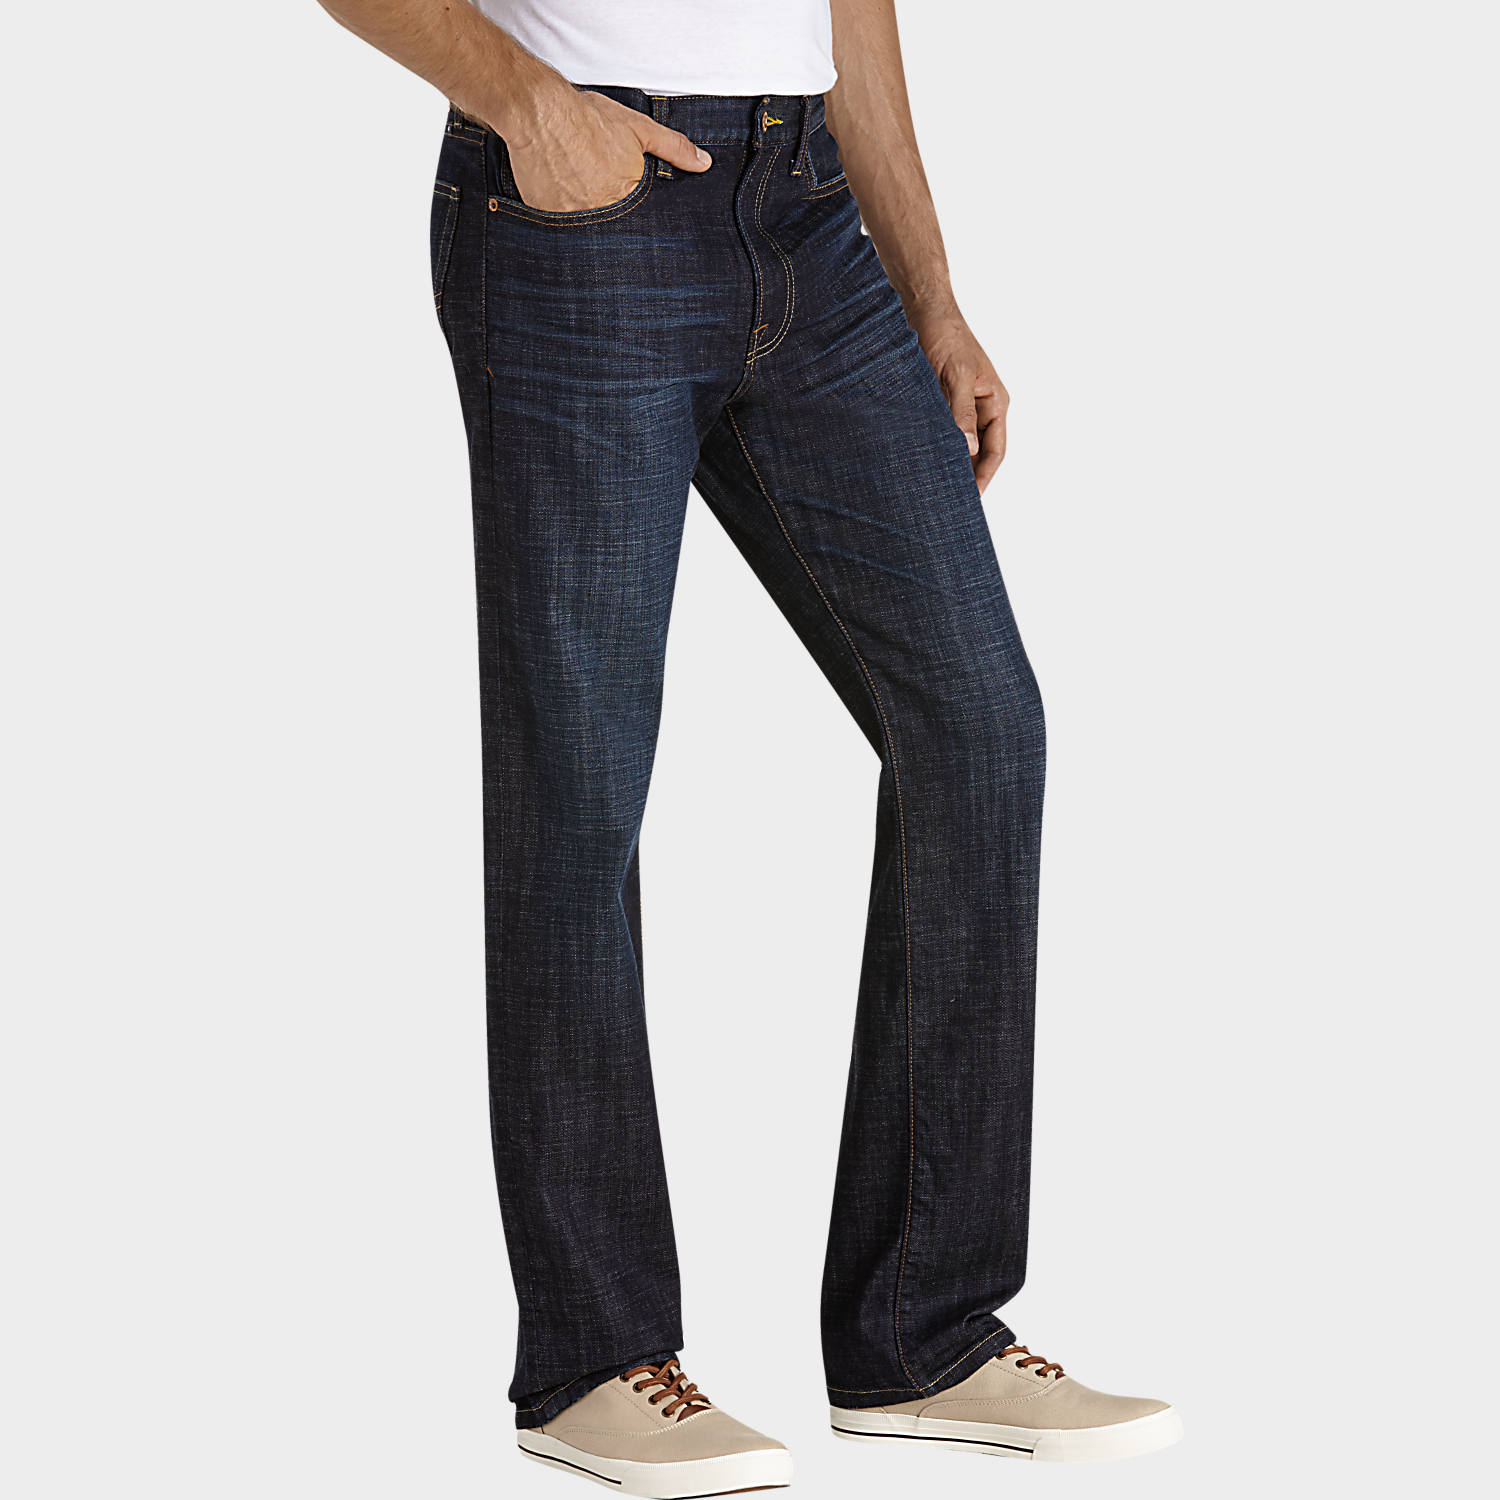 Men's Jeans, Designer Jeans for Men, Classic, Relaxed | Men's ...